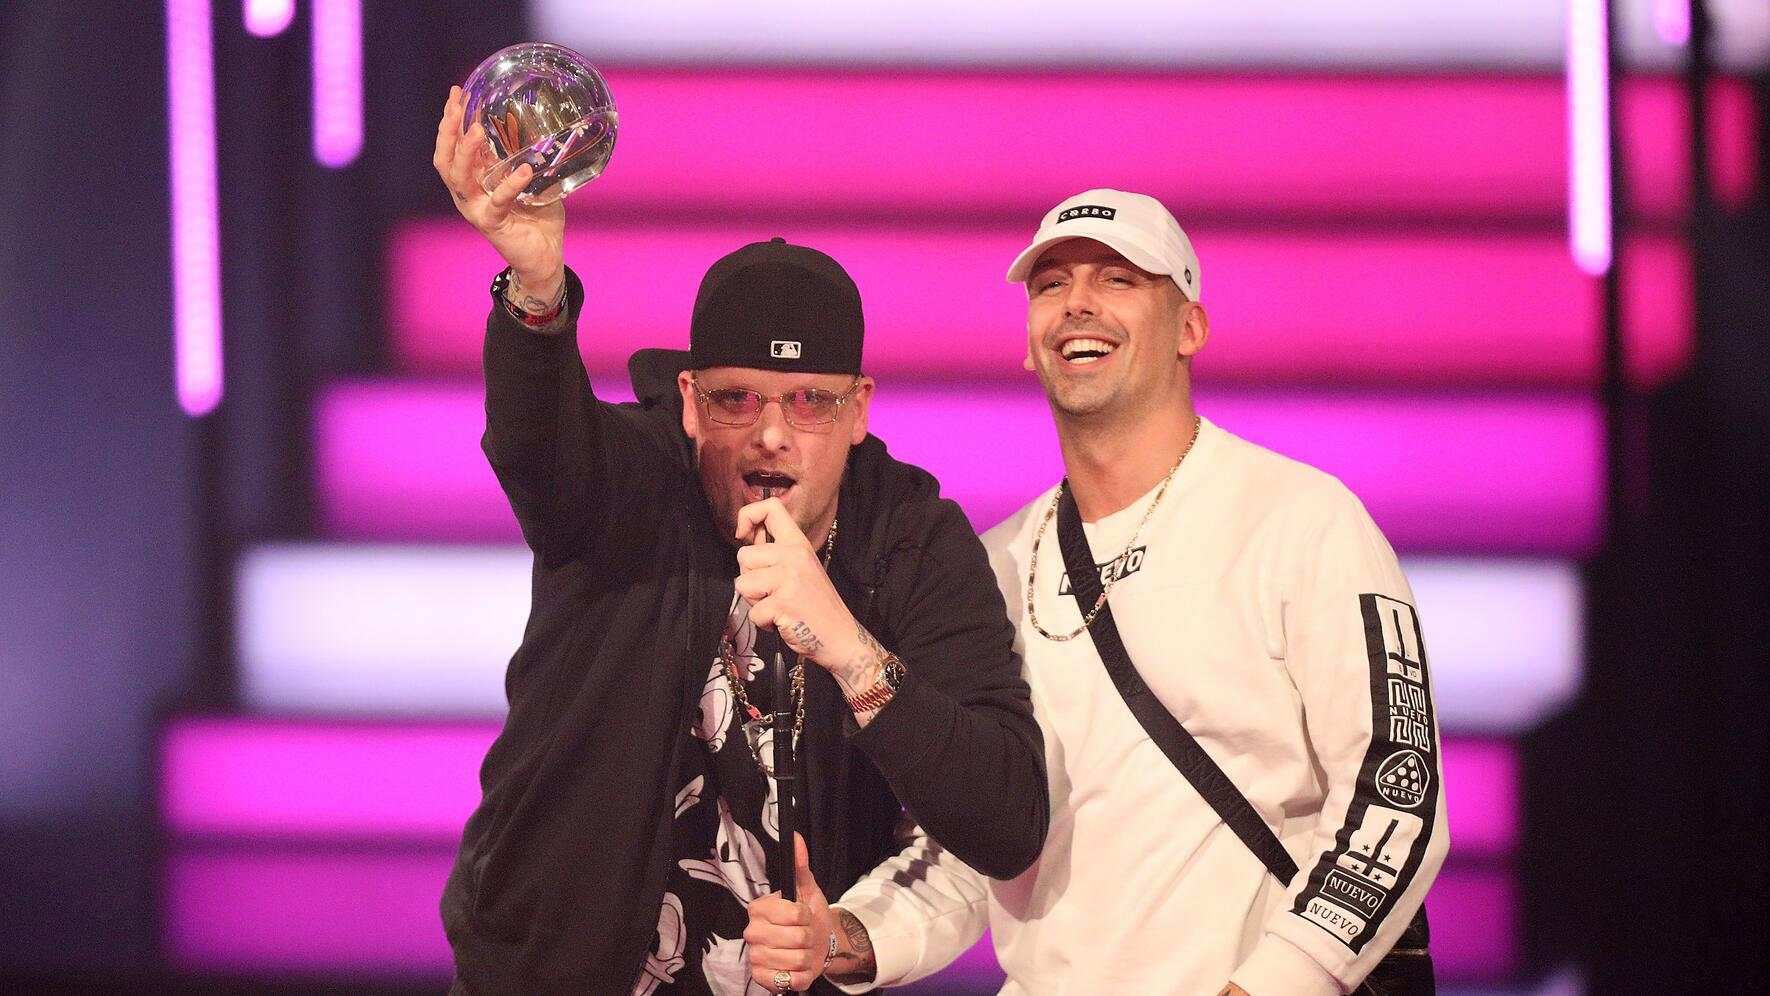 BOCHUM, GERMANY - DECEMBER 07: Bonez MC and RAF Camora speak on stage after receiving the award for best hip-hop-act during the 1Live Krone at Jahrhunderthalle on December 7, 2017 in Bochum, Germany. (Photo by Florian Ebener/Getty Images)